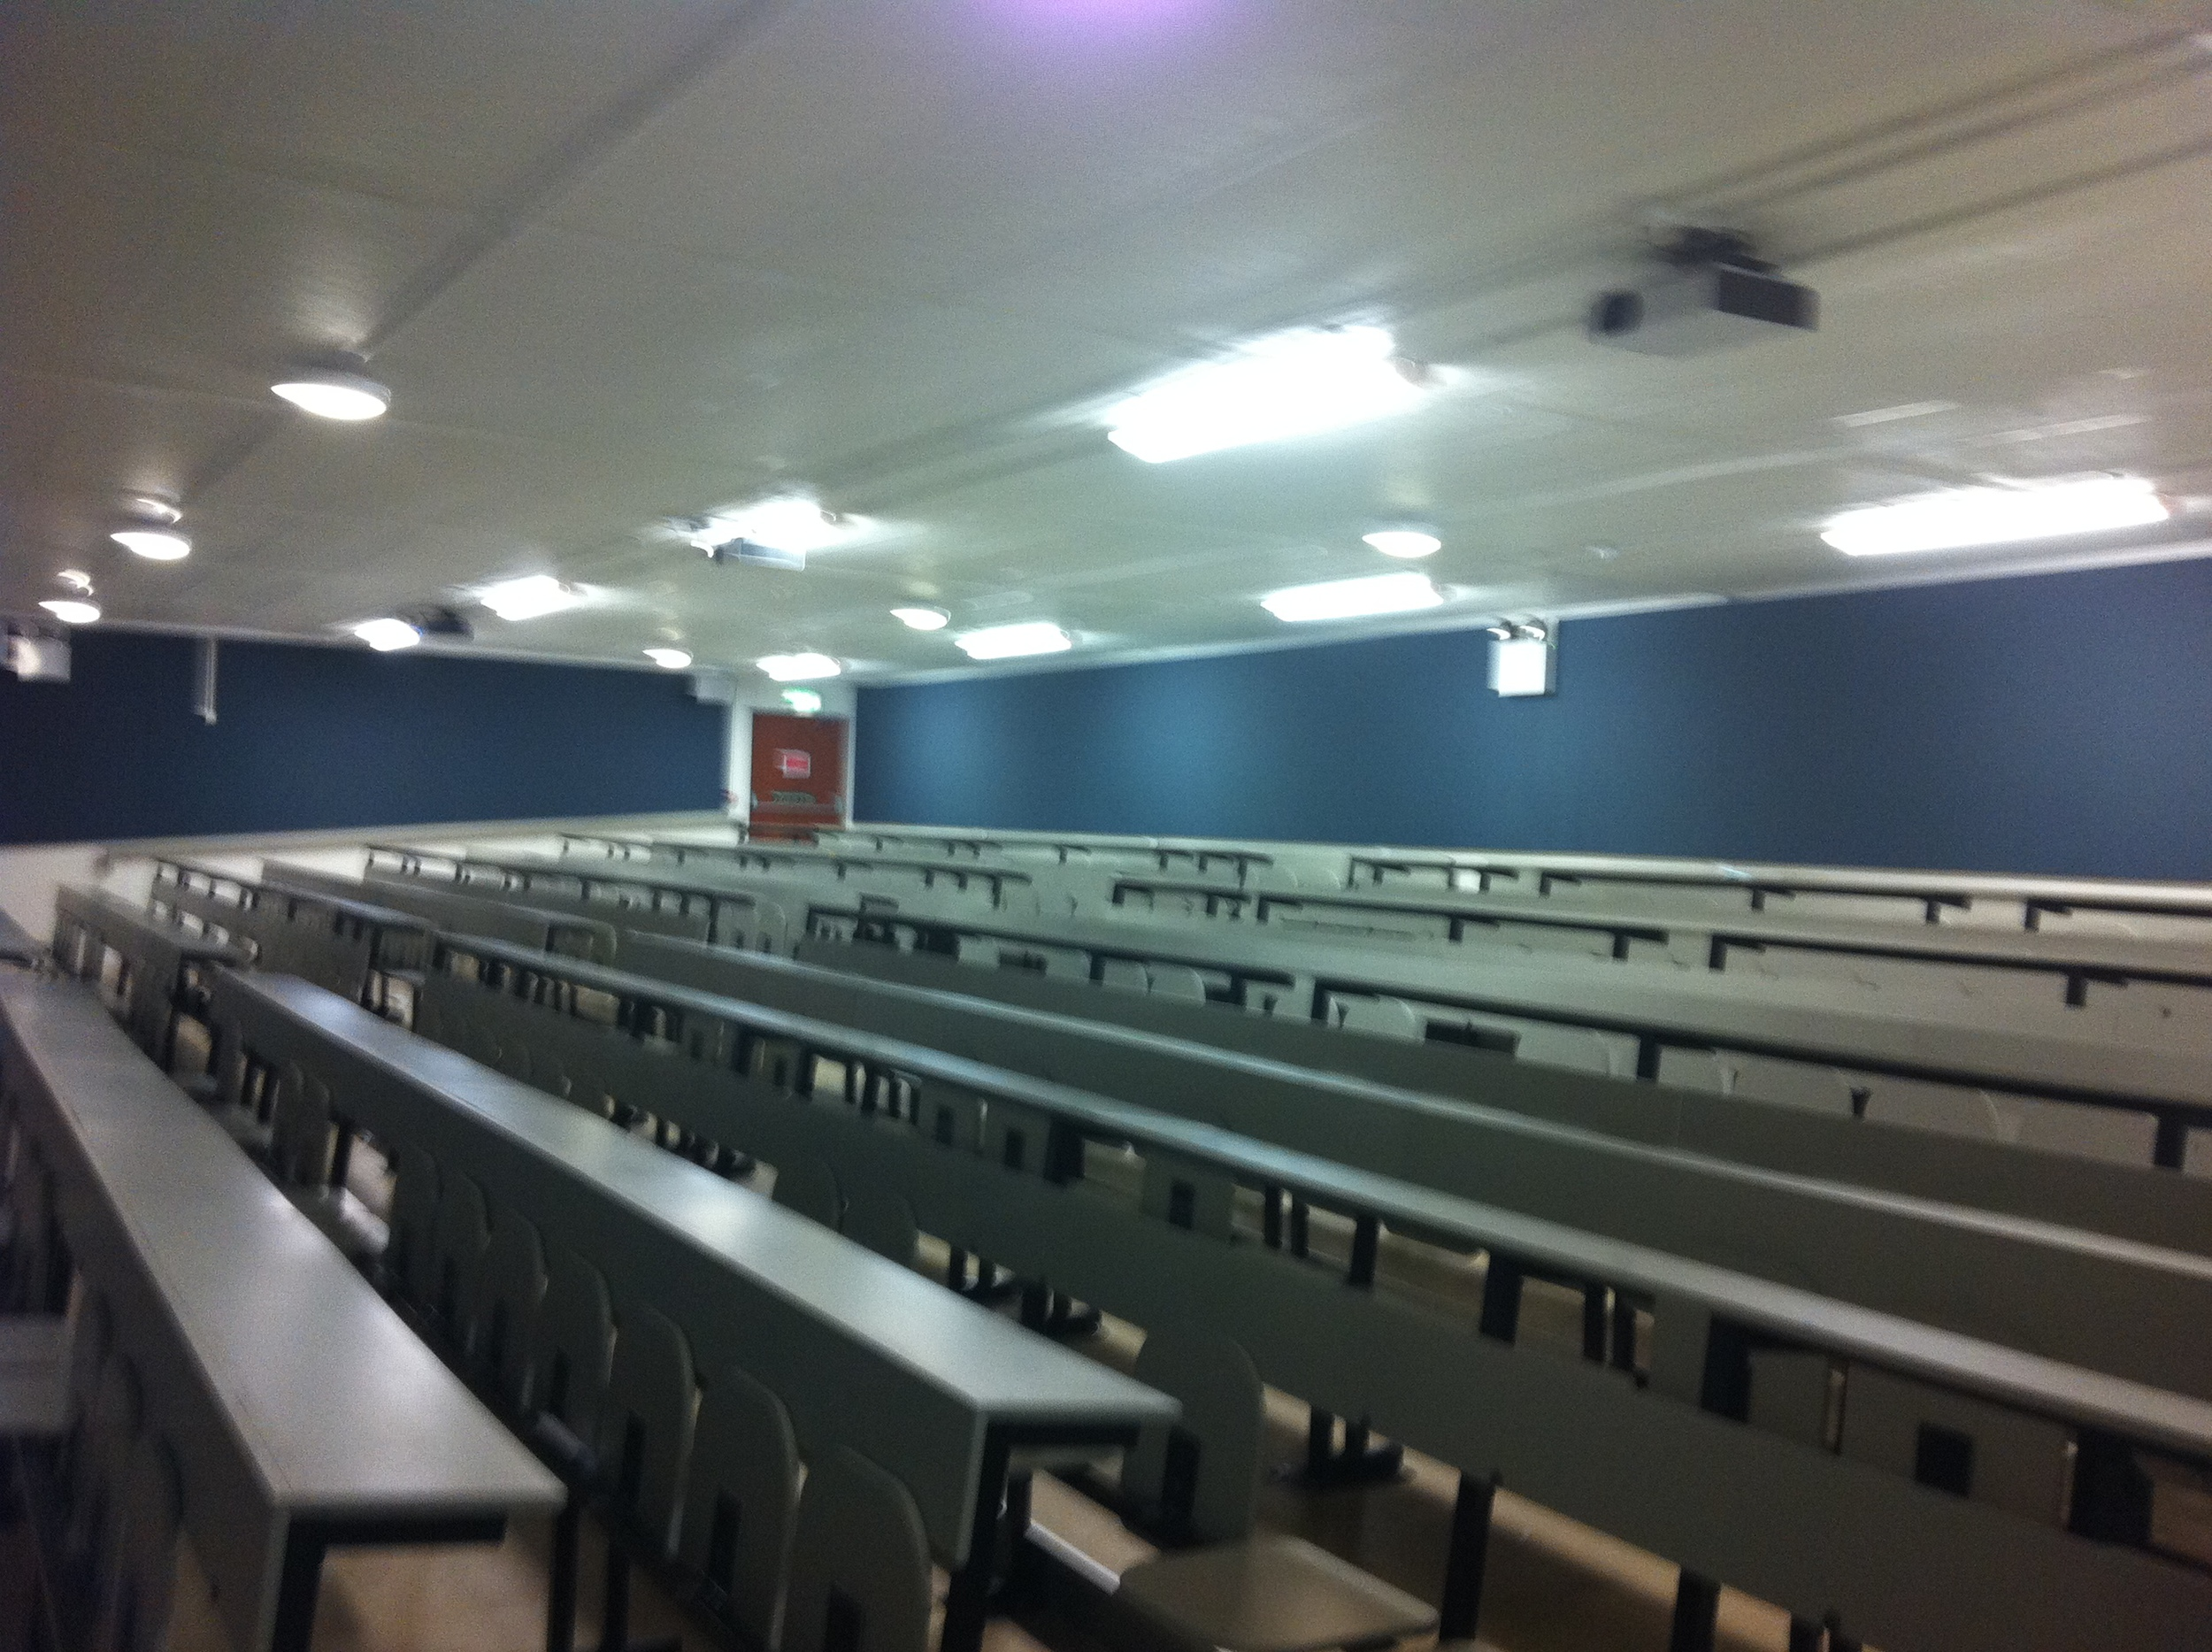 ucd-lecture-theatre-1.jpg